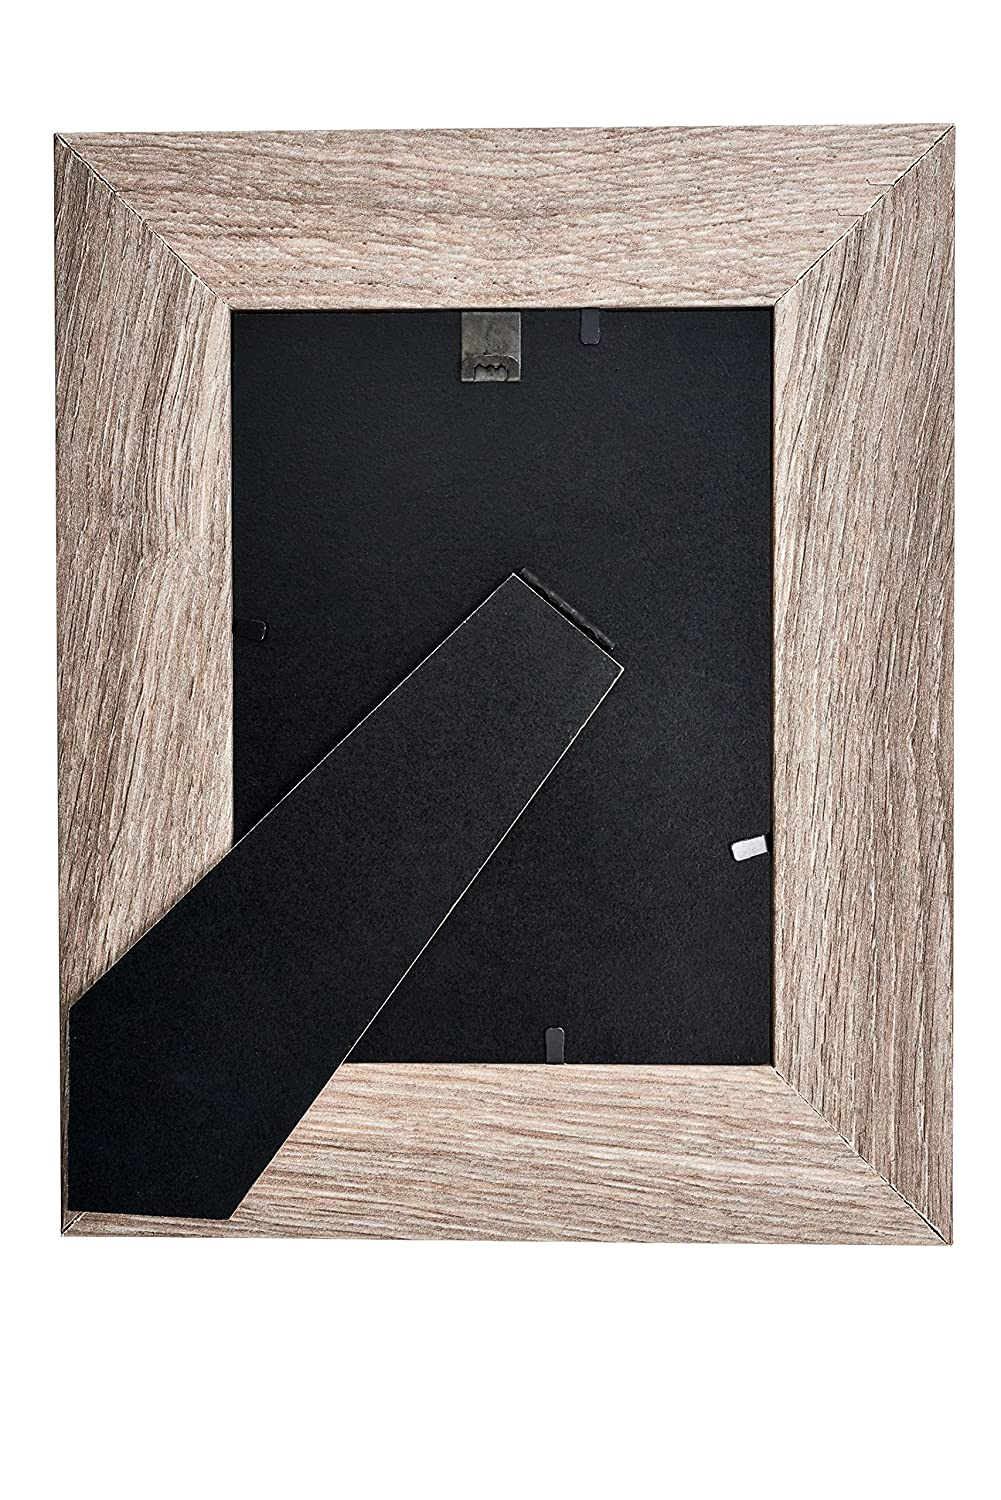 Distressed Brown MDF Wood Picture Frame 4X6 and Wall Hang Clip Easel Back Display with Photo Glass Front 4 pc 4 Piece Set Lambert Frame 1604